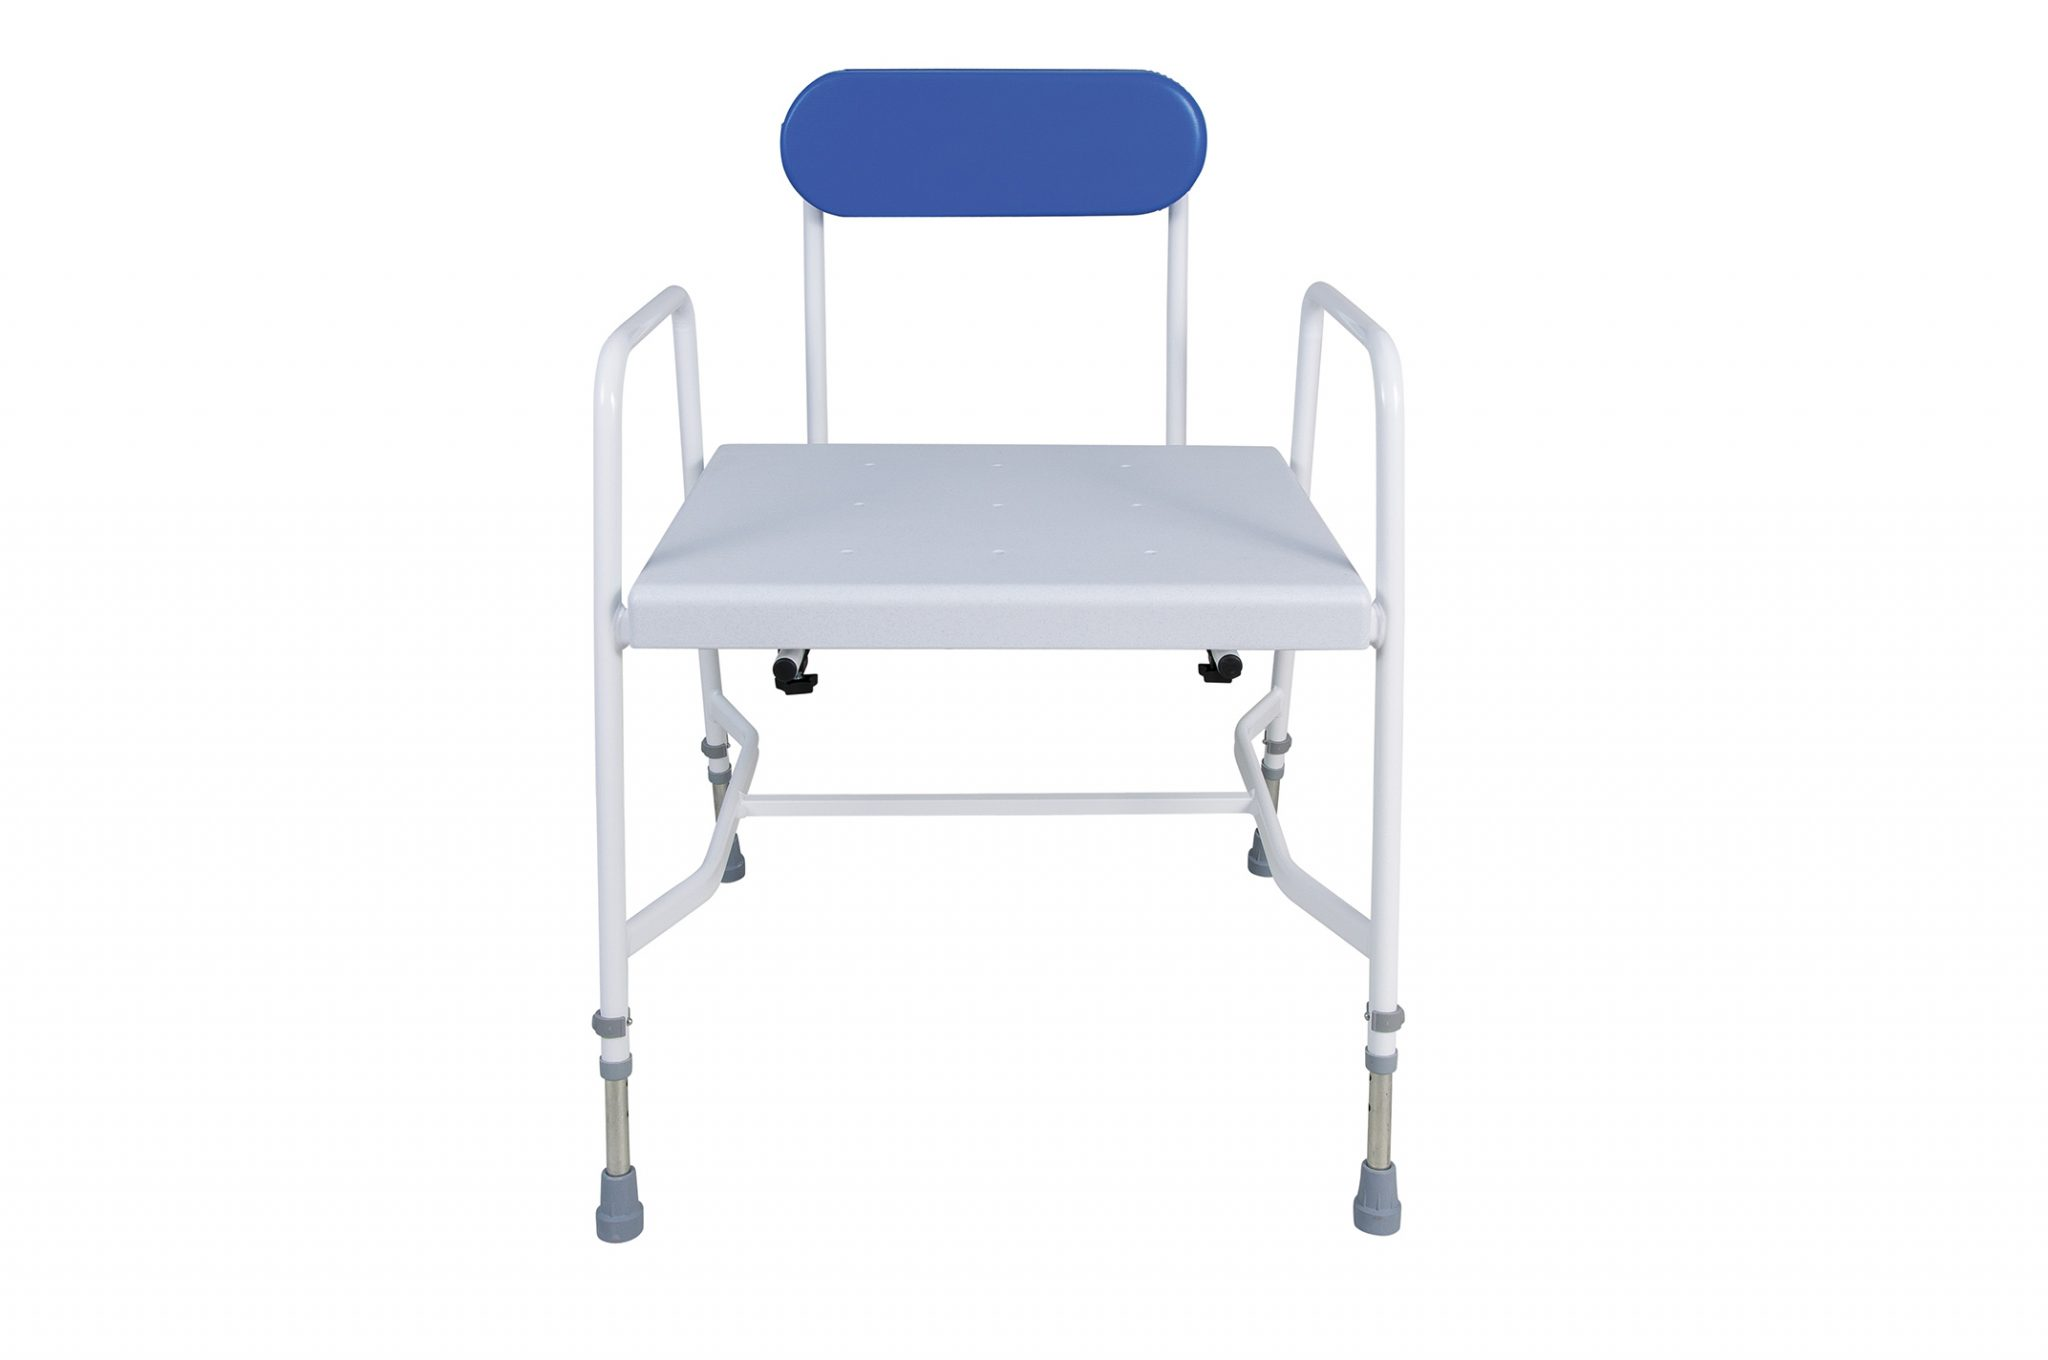 Bariatric Shower Chair X281 Bariatric Shower Chair Cefndy Healthcare